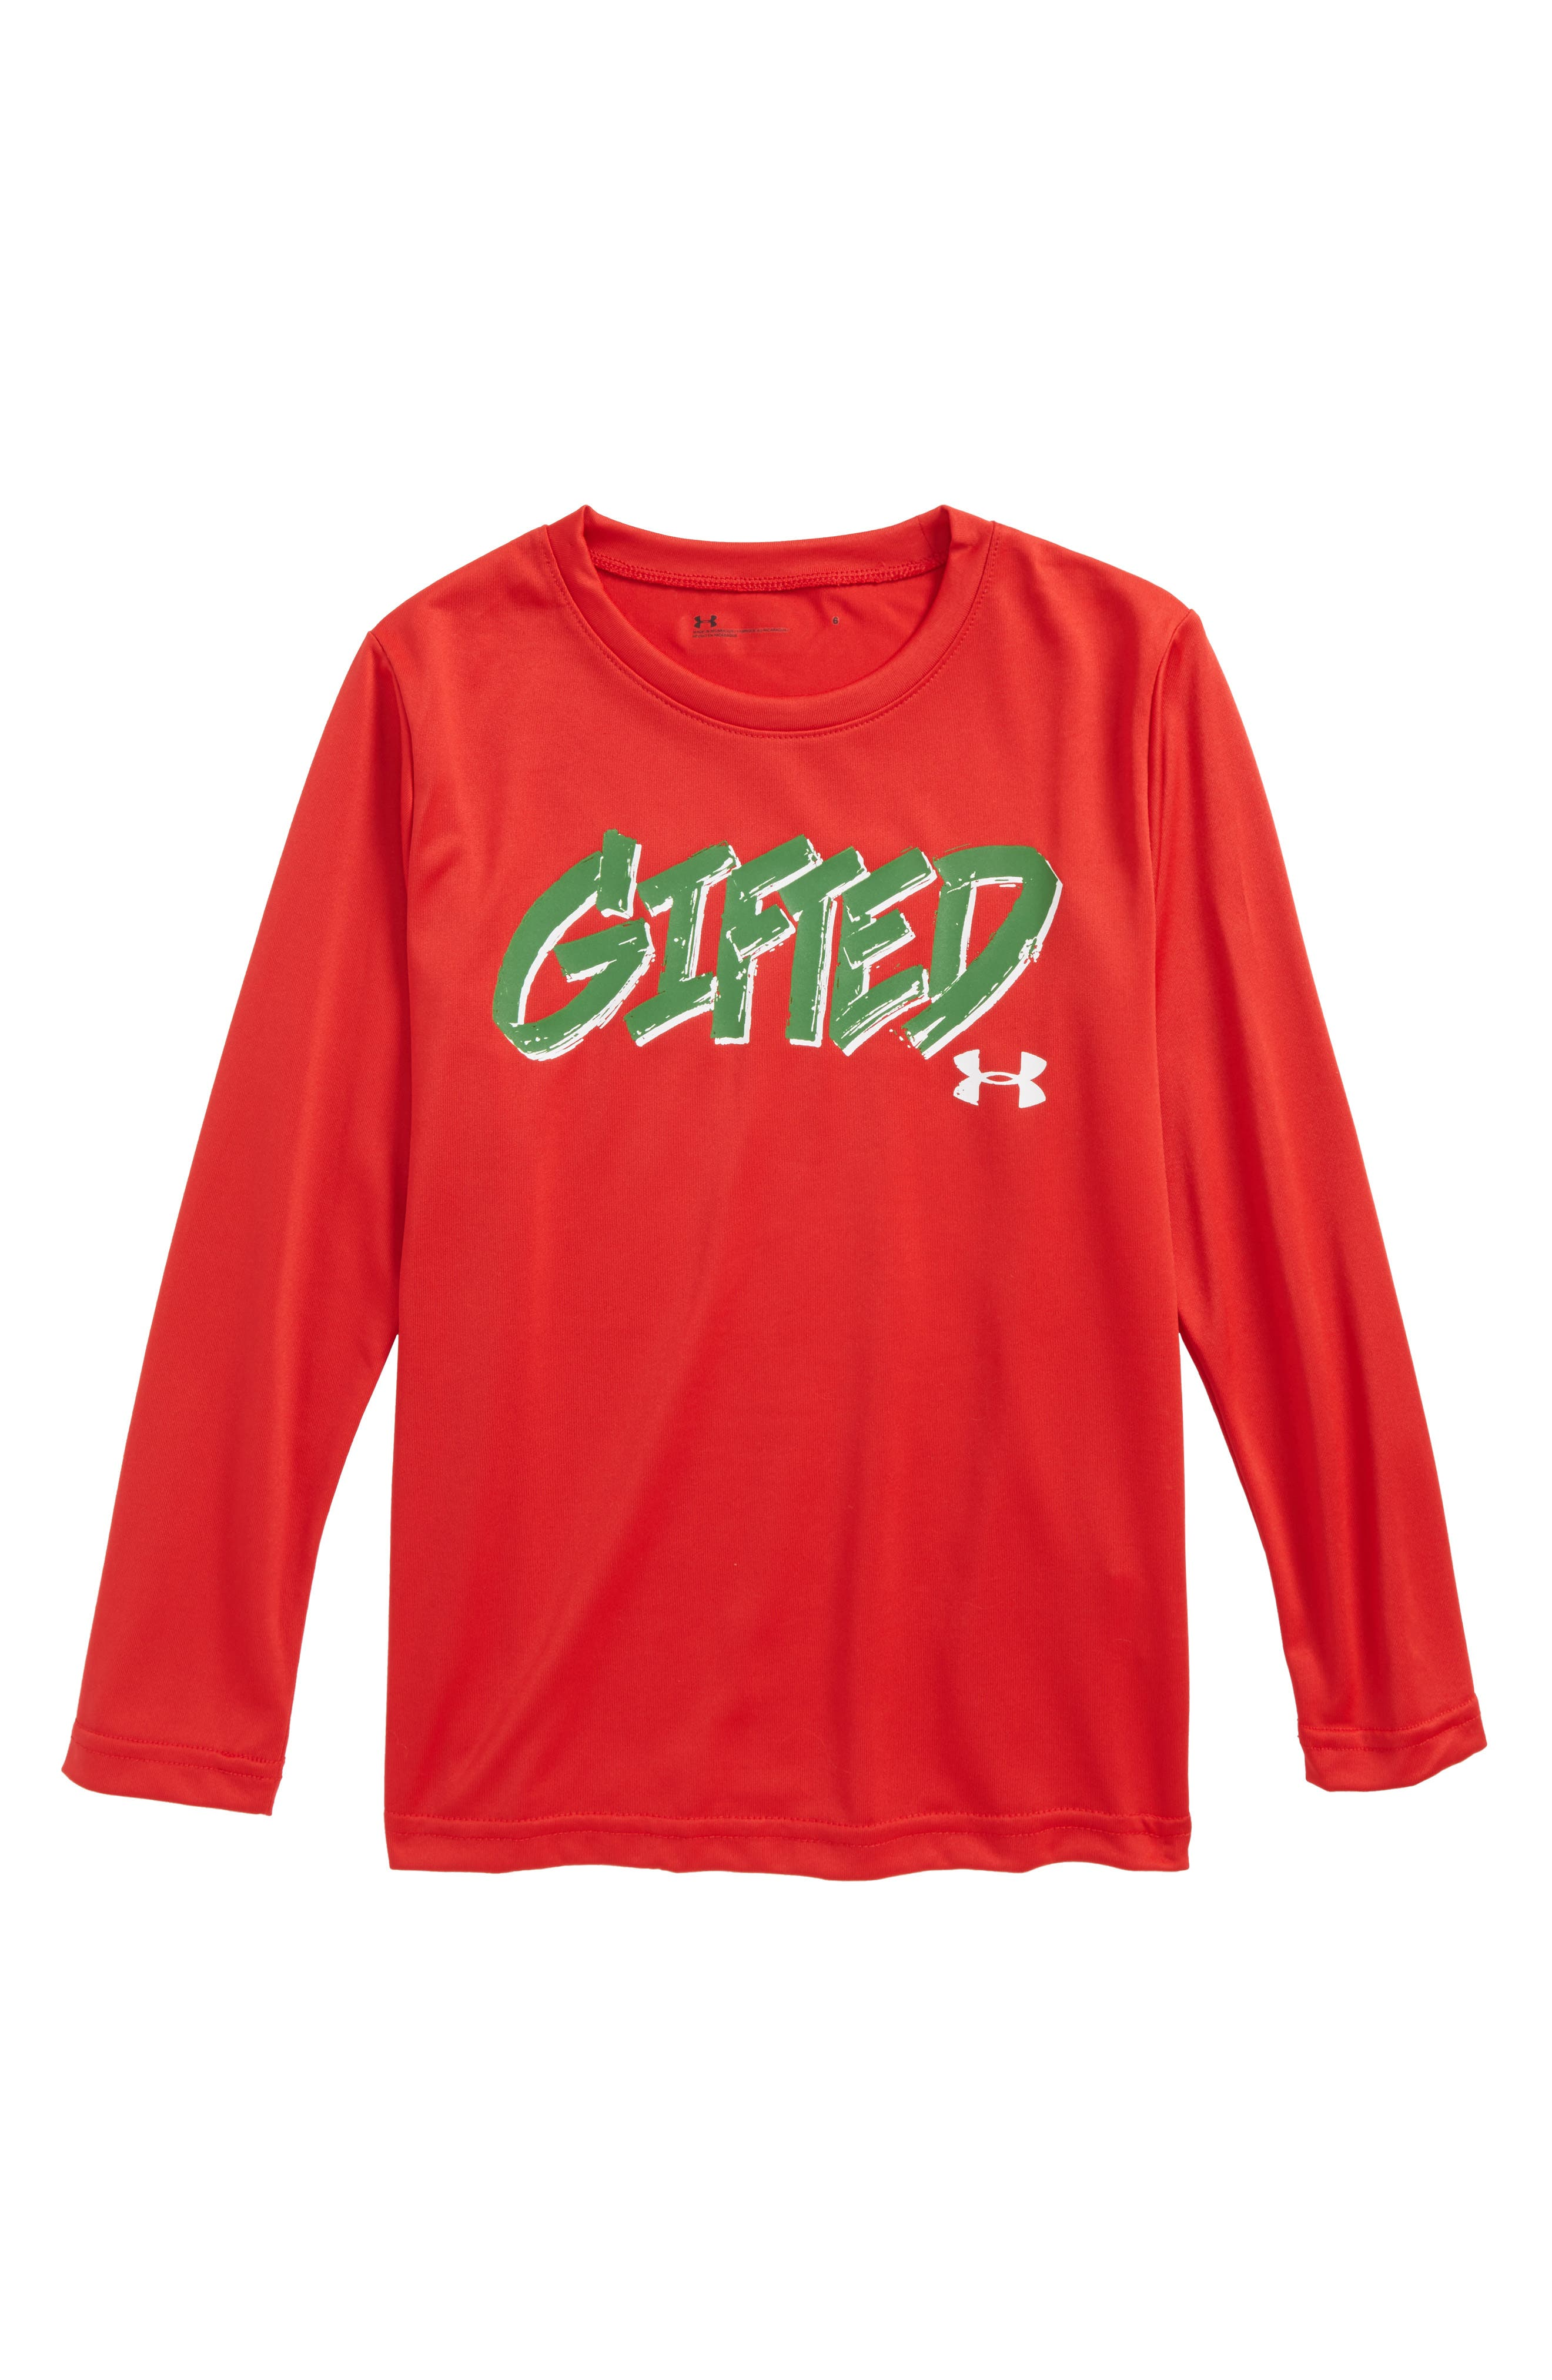 Main Image - Under Armour Gifted T-Shirt (Toddler Boys & Little Boys)